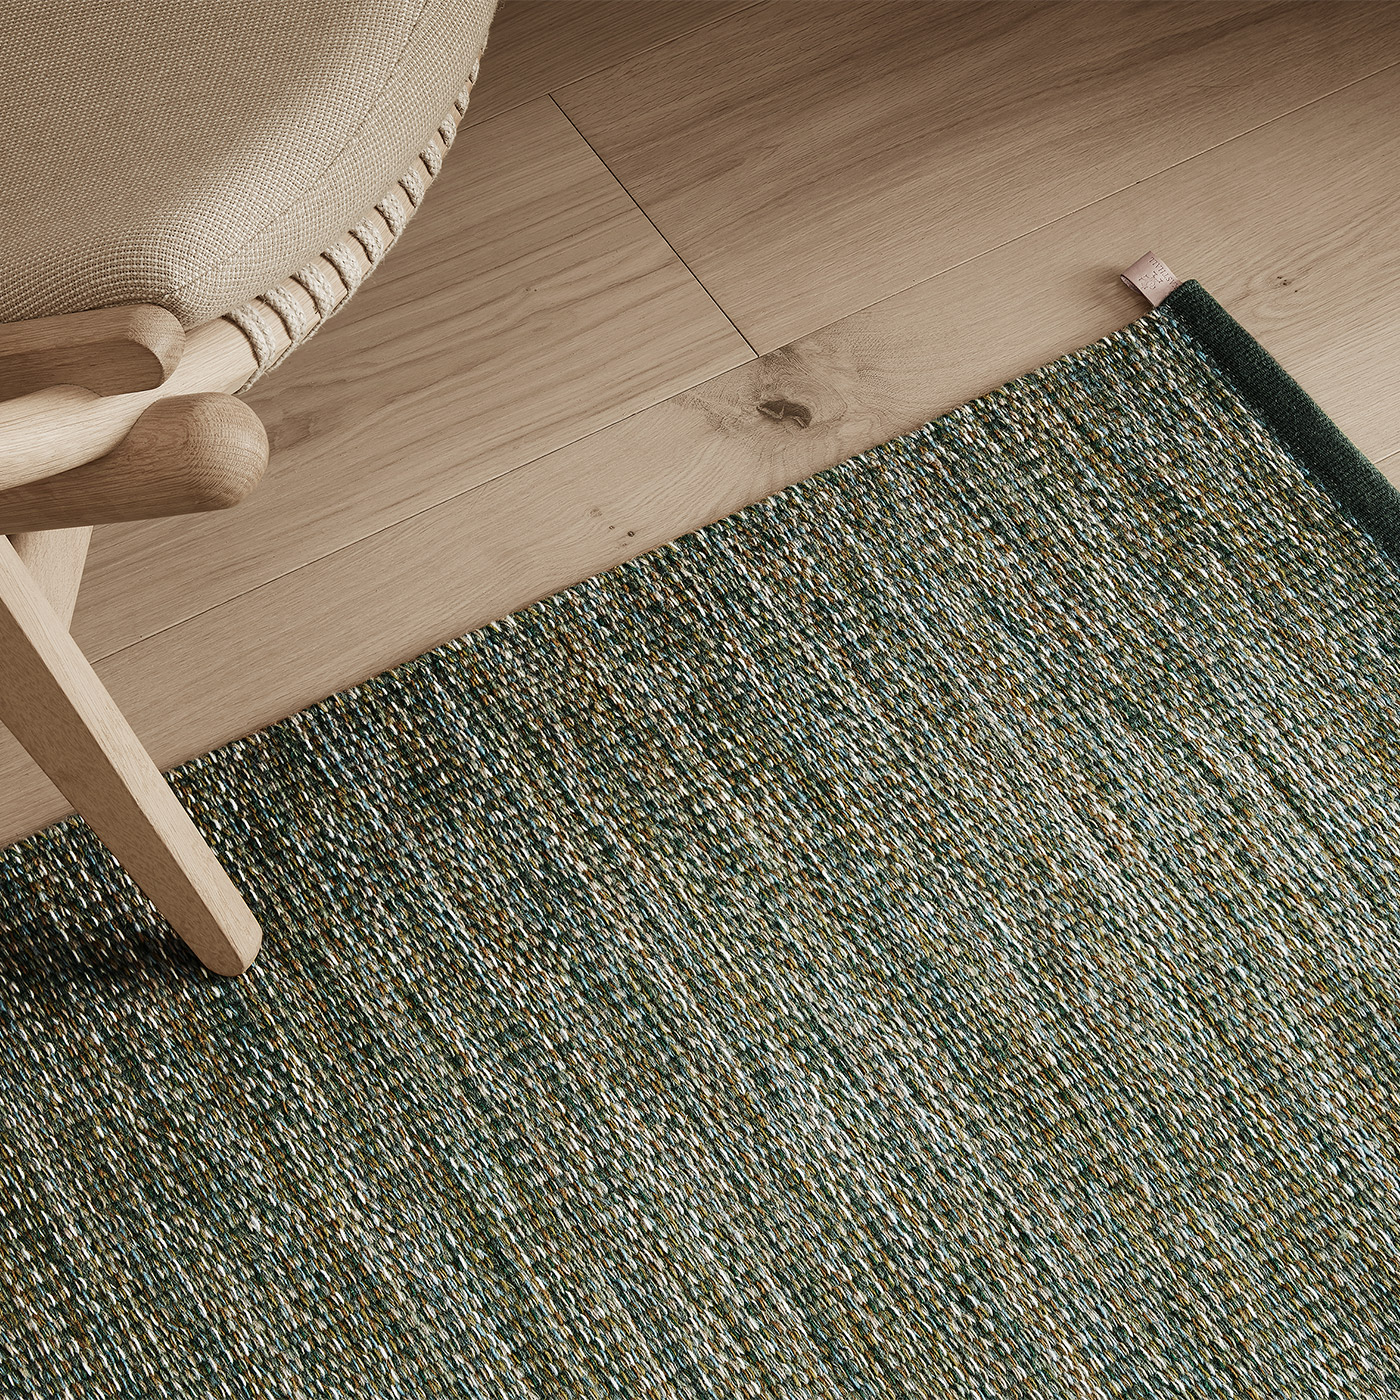 modern green marl rug with Scandinavian light oak armchair